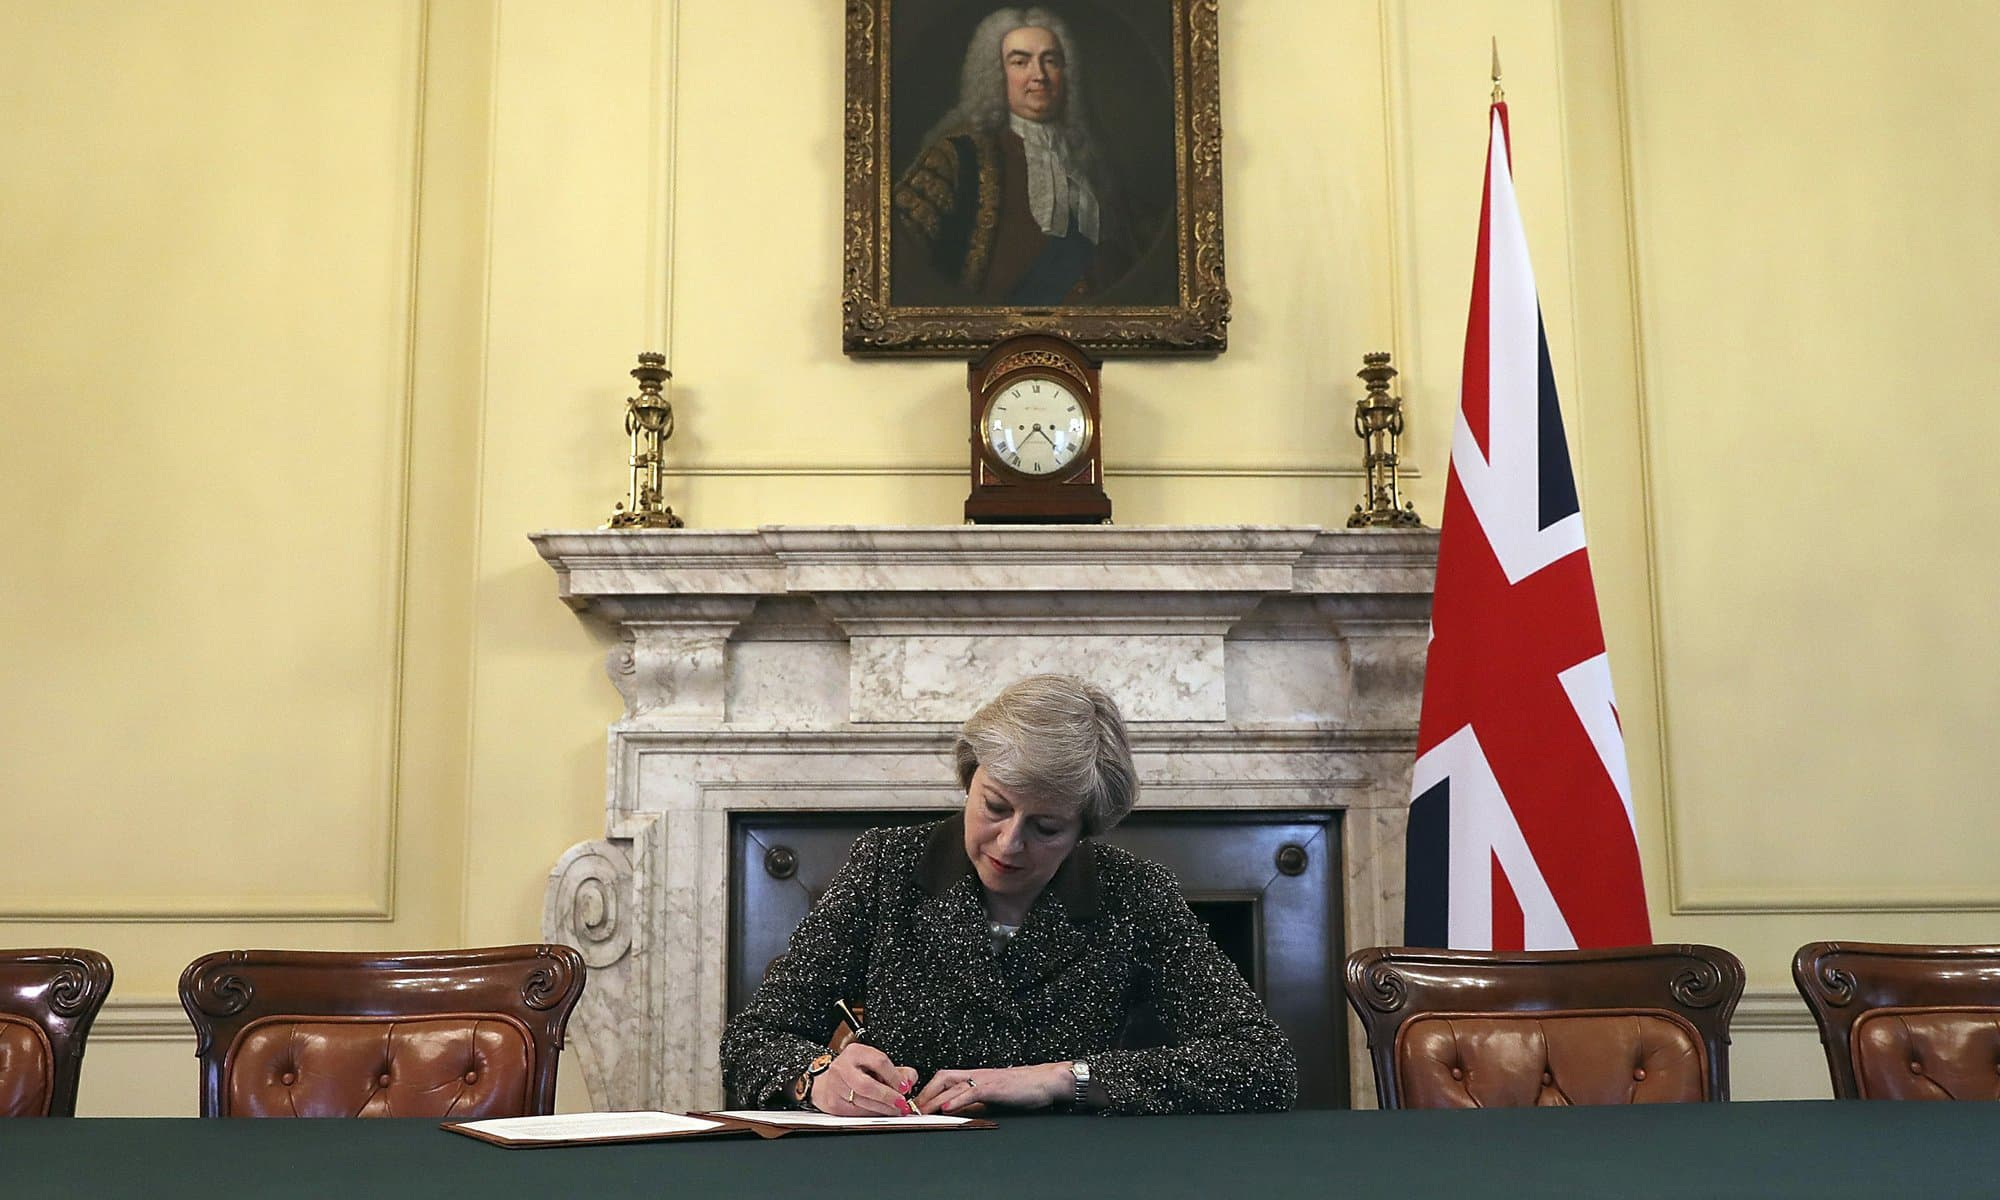 In this March 28, 2017 file photo, Britain's Prime Minister Theresa May, sitting below a painting of Britain's first Prime Minister Robert Walpole, signs the official letter to European Council President Donald Tusk, invoking Article 50 of the bloc's key treaty, the formal start of exit negotiations. —  AP